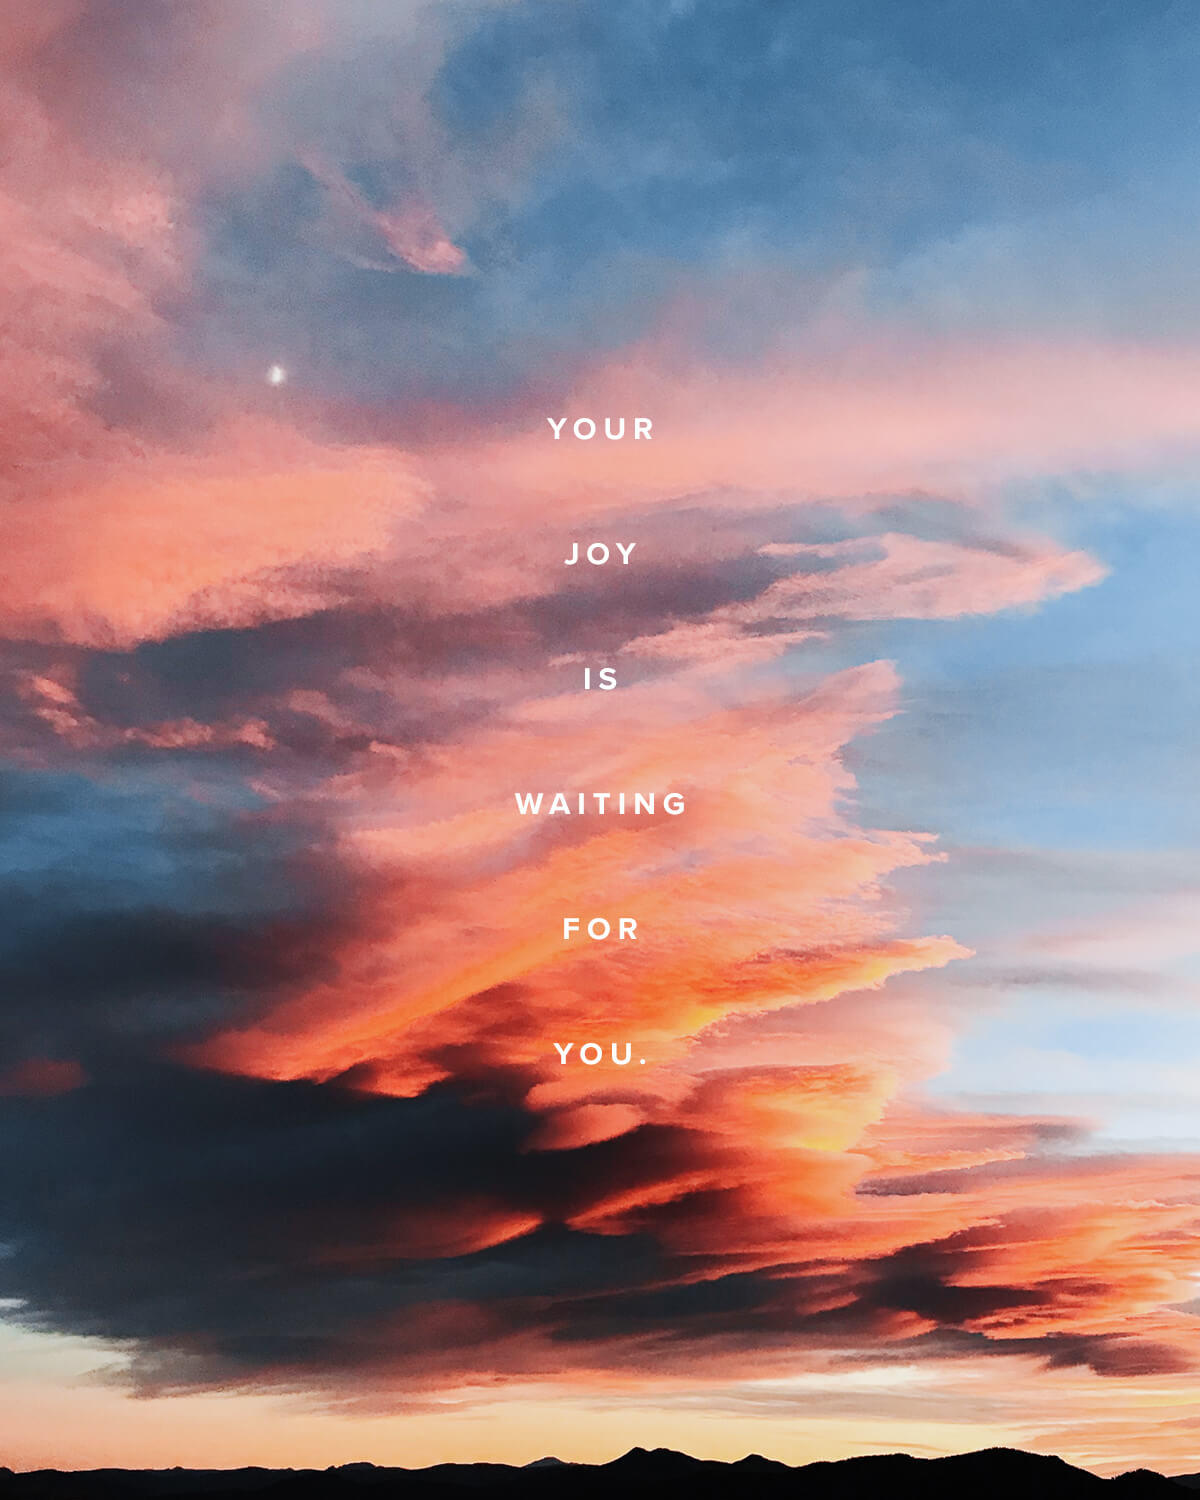 Your joy is waiting for you